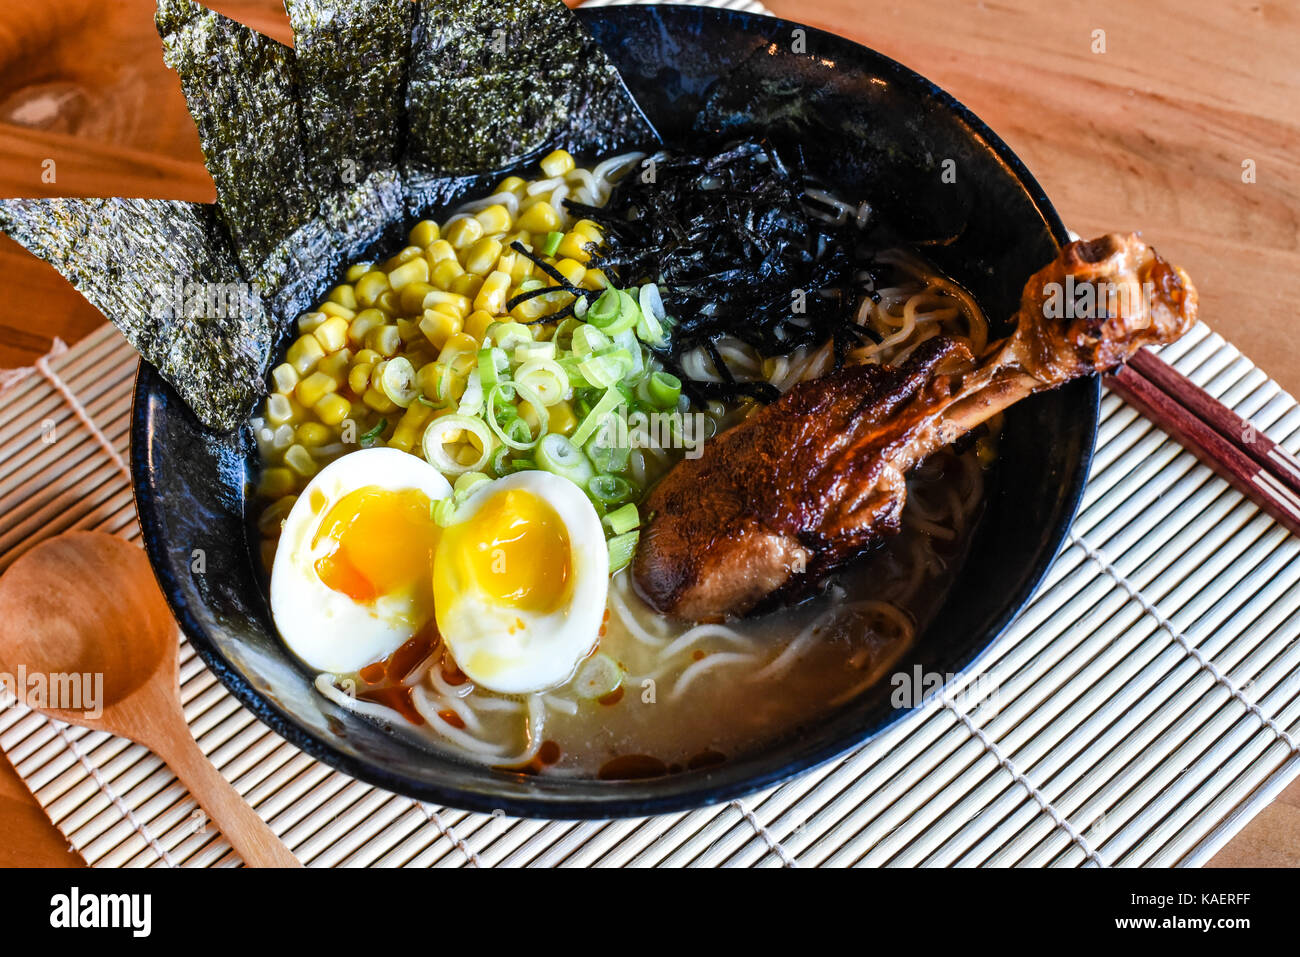 Chicken Miso Ramen, Flavor packed with a blended miso paste. Topped with buttered corn and chicken drumstick. - Stock Image